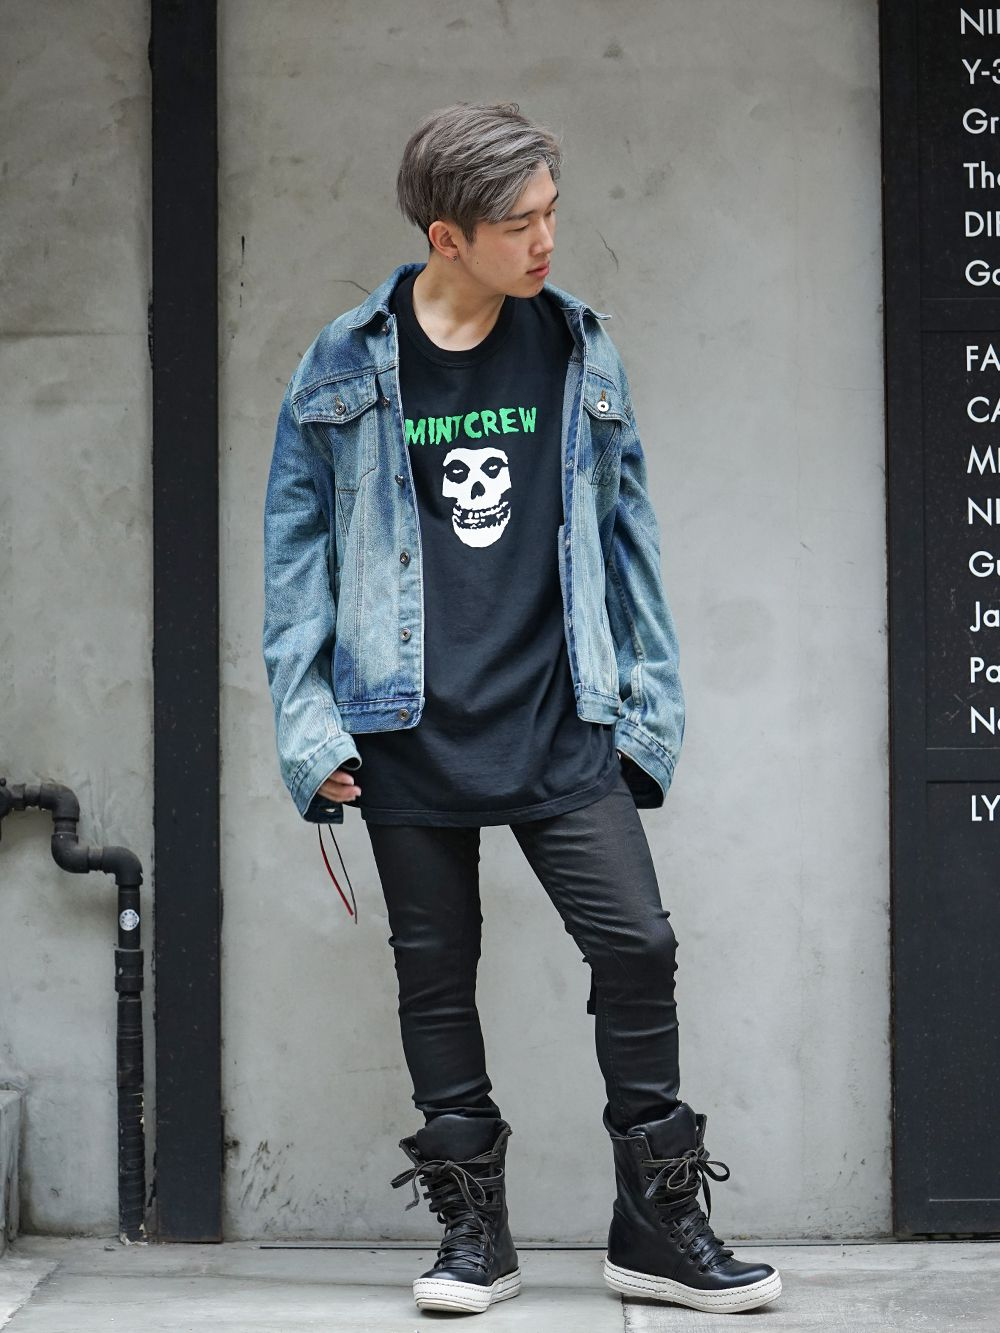 MINT CREW × Misfits Collaboration tee Styling - 1-001